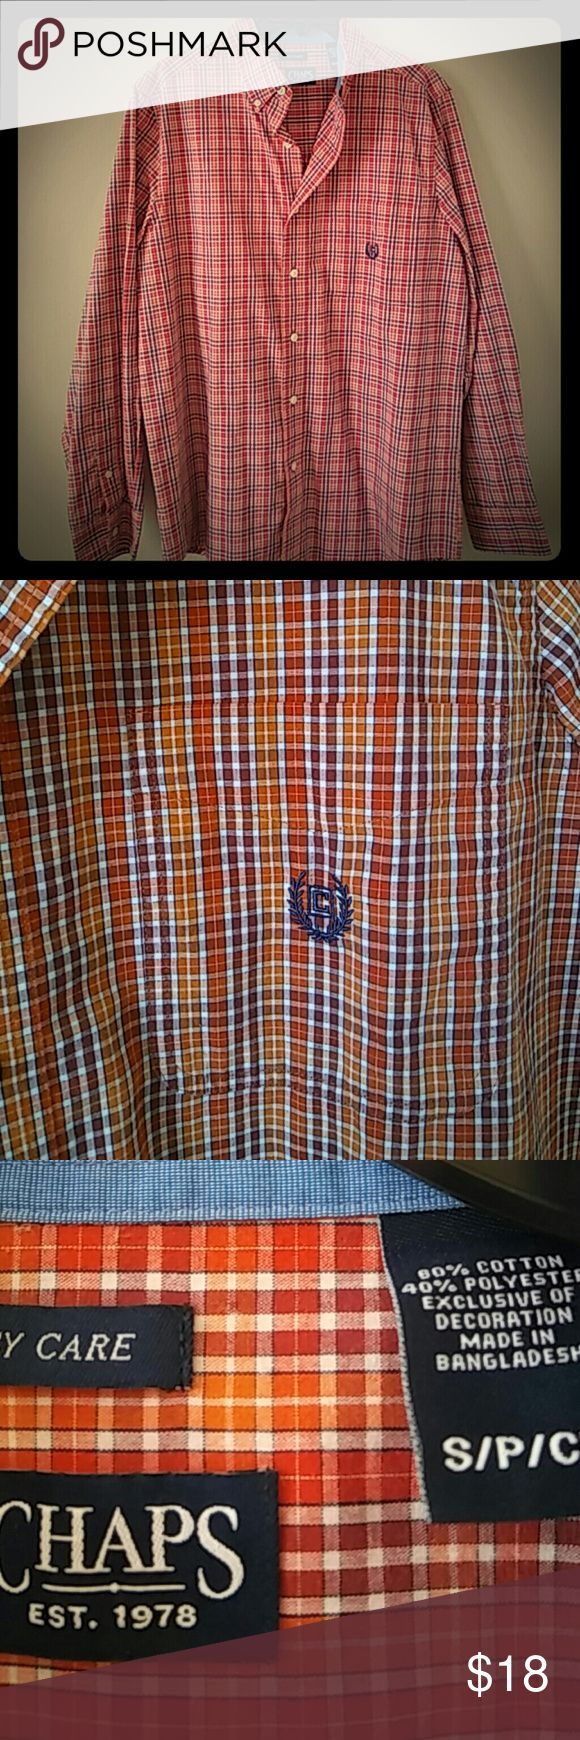 Red & Orange Chaps Shirt Red & Orange plaid button down shirt.  Great condition. Chaps Shirts Casual Button Down Shirts